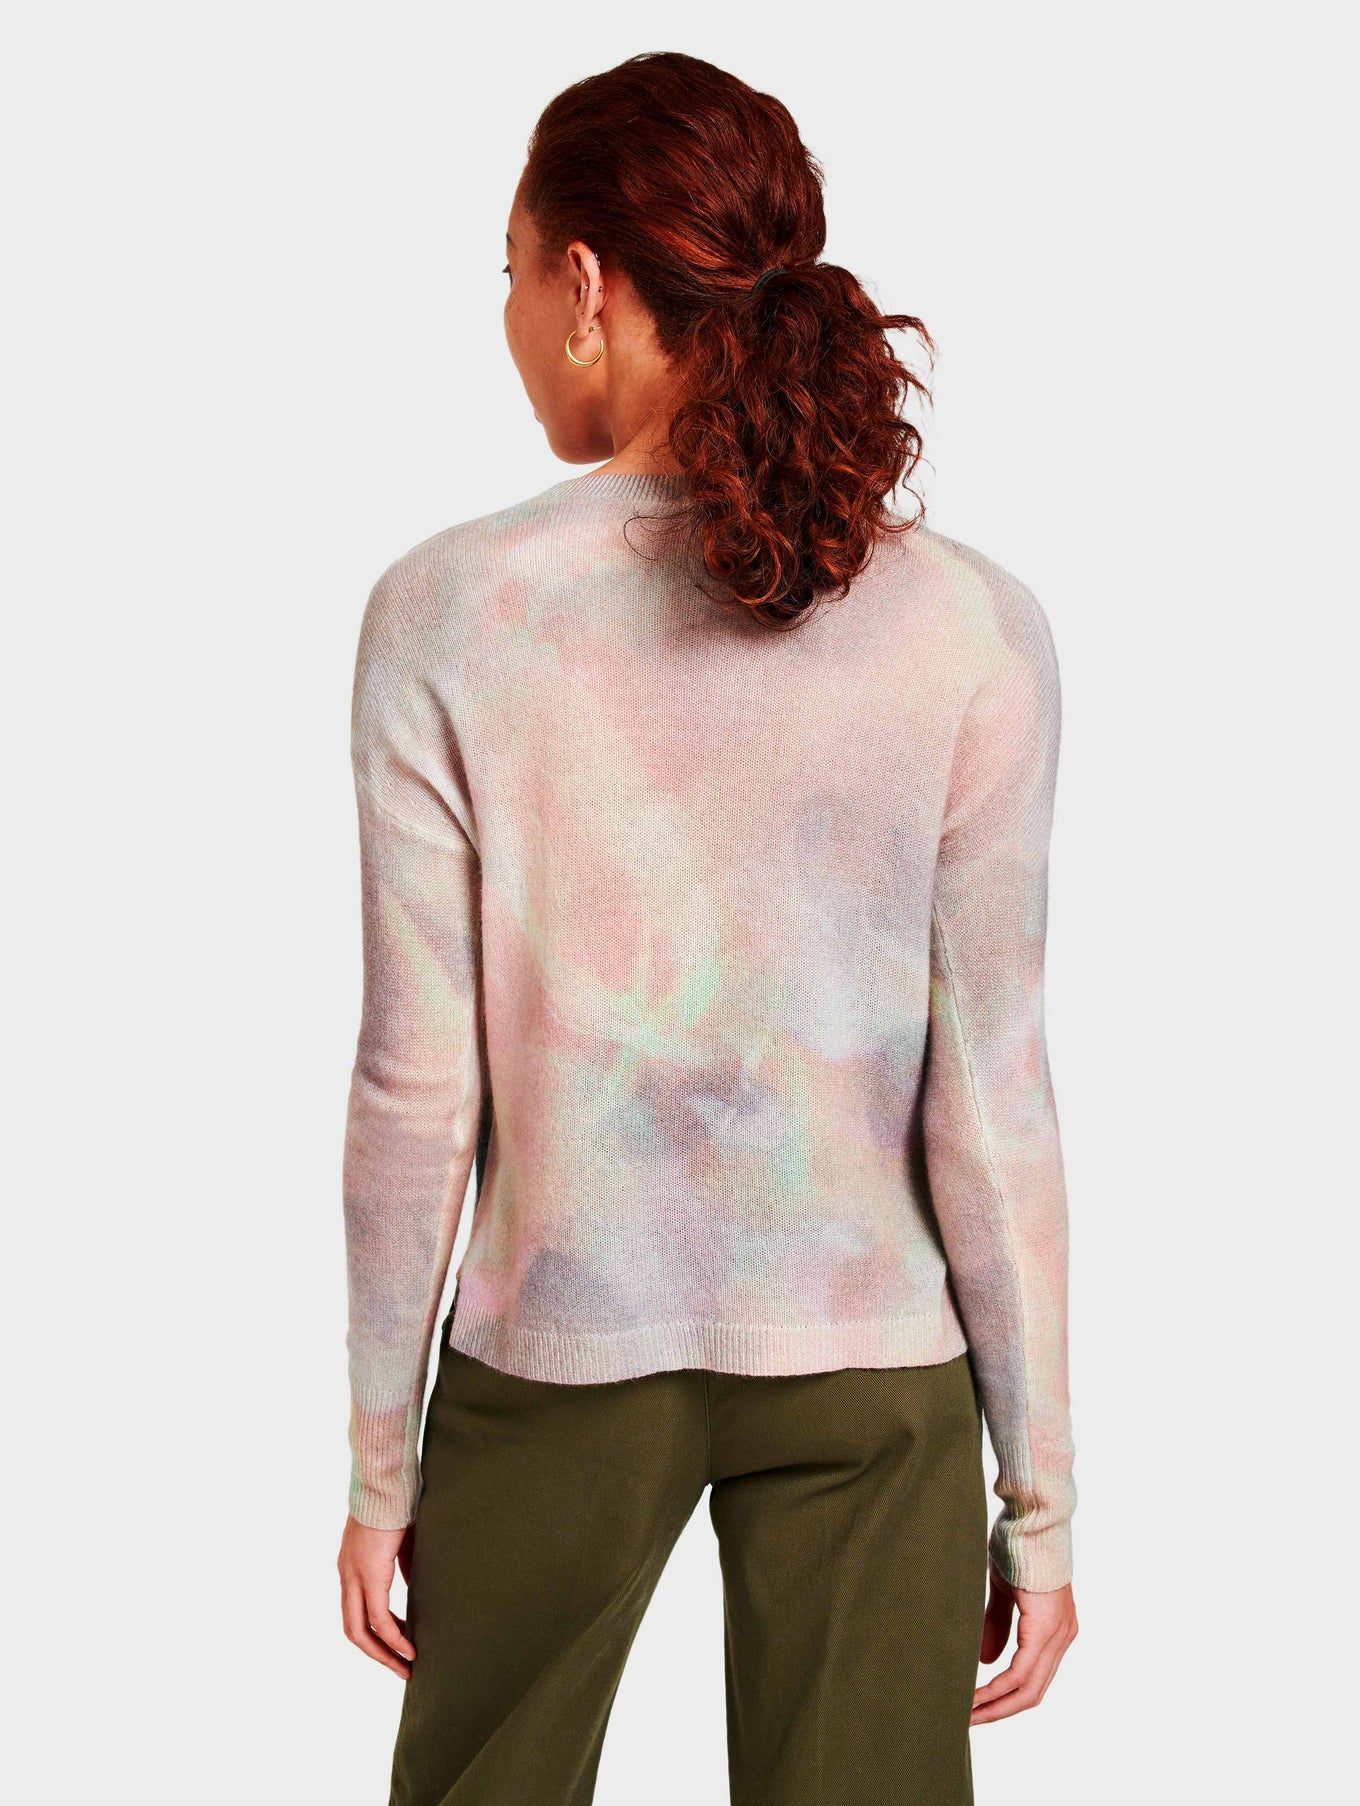 Cashmere Aura Print Pullover - Pink Multi - Image 4